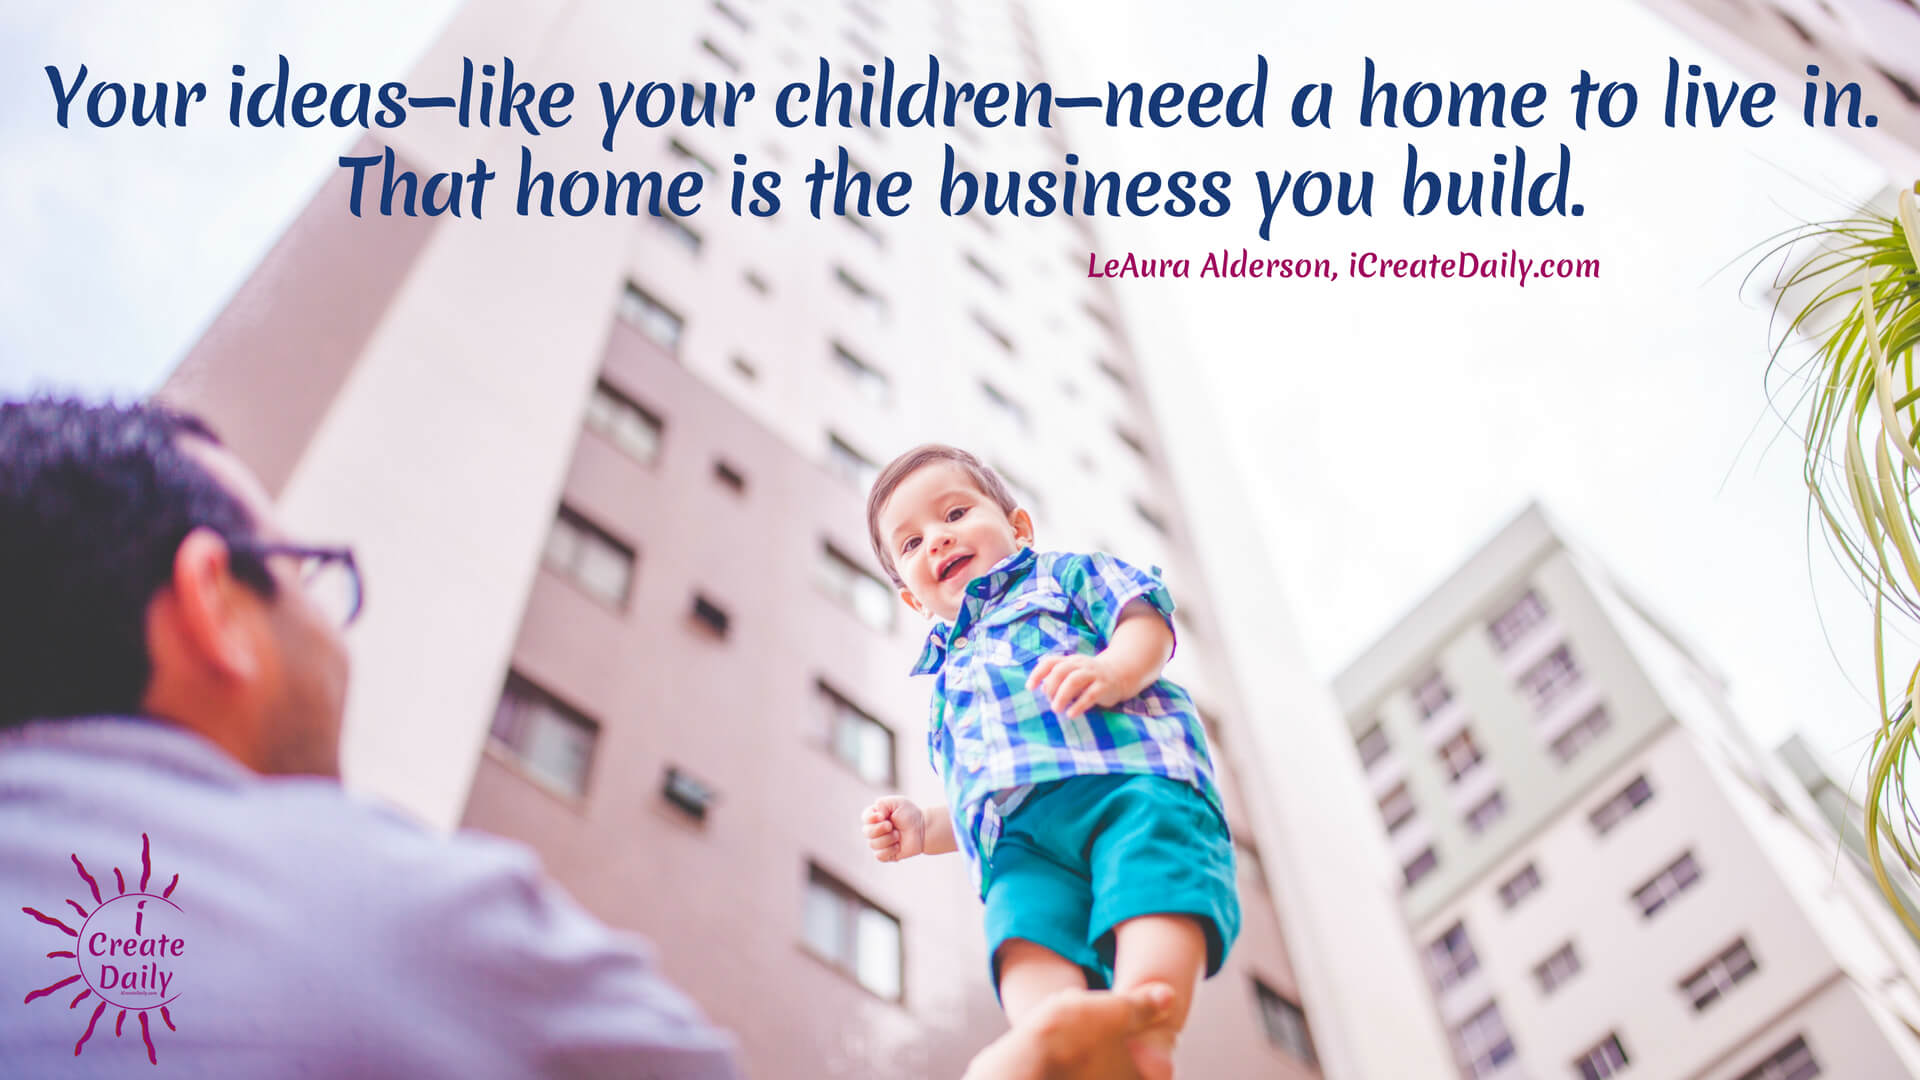 For your children to thrive you must help them to become all that they can be. Likewise for your business. For every success story, there are years of effort supporting that; most through the daily discipline of creating, learning, and engaging in the art of business. #CreaiveBusinessAdvice #CreativeBusinessIdeas #ArtBusiness #SuccessQuote #BusinessSuccess #HeartInBusiness #iCreateDaily